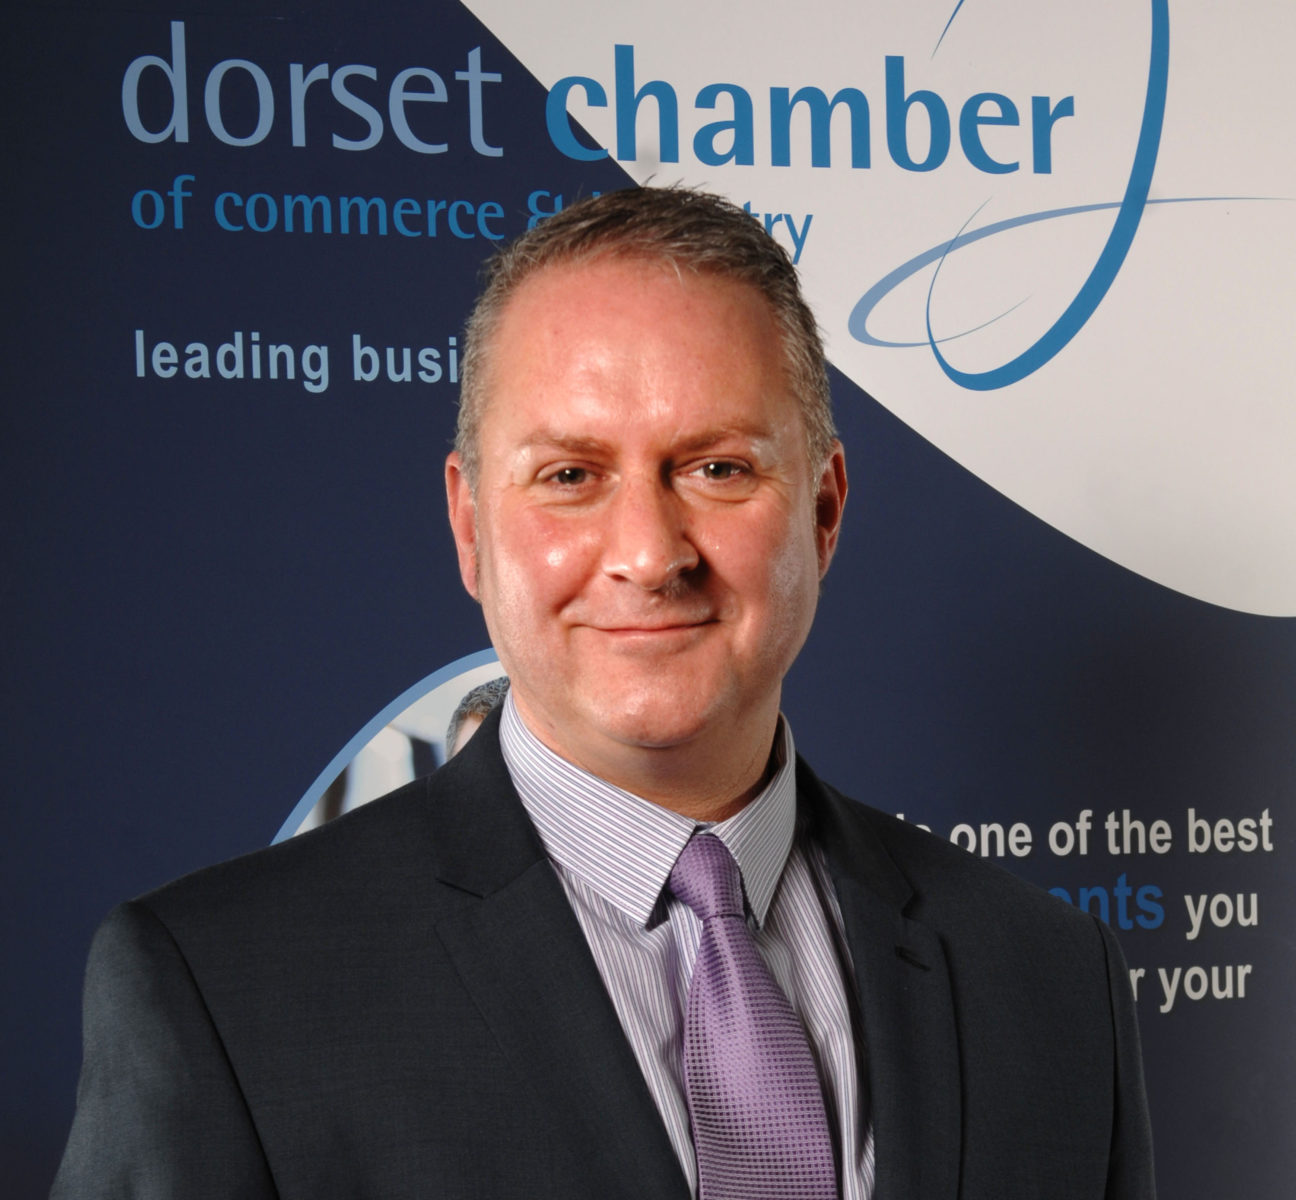 A new economic survey launched in Dorset